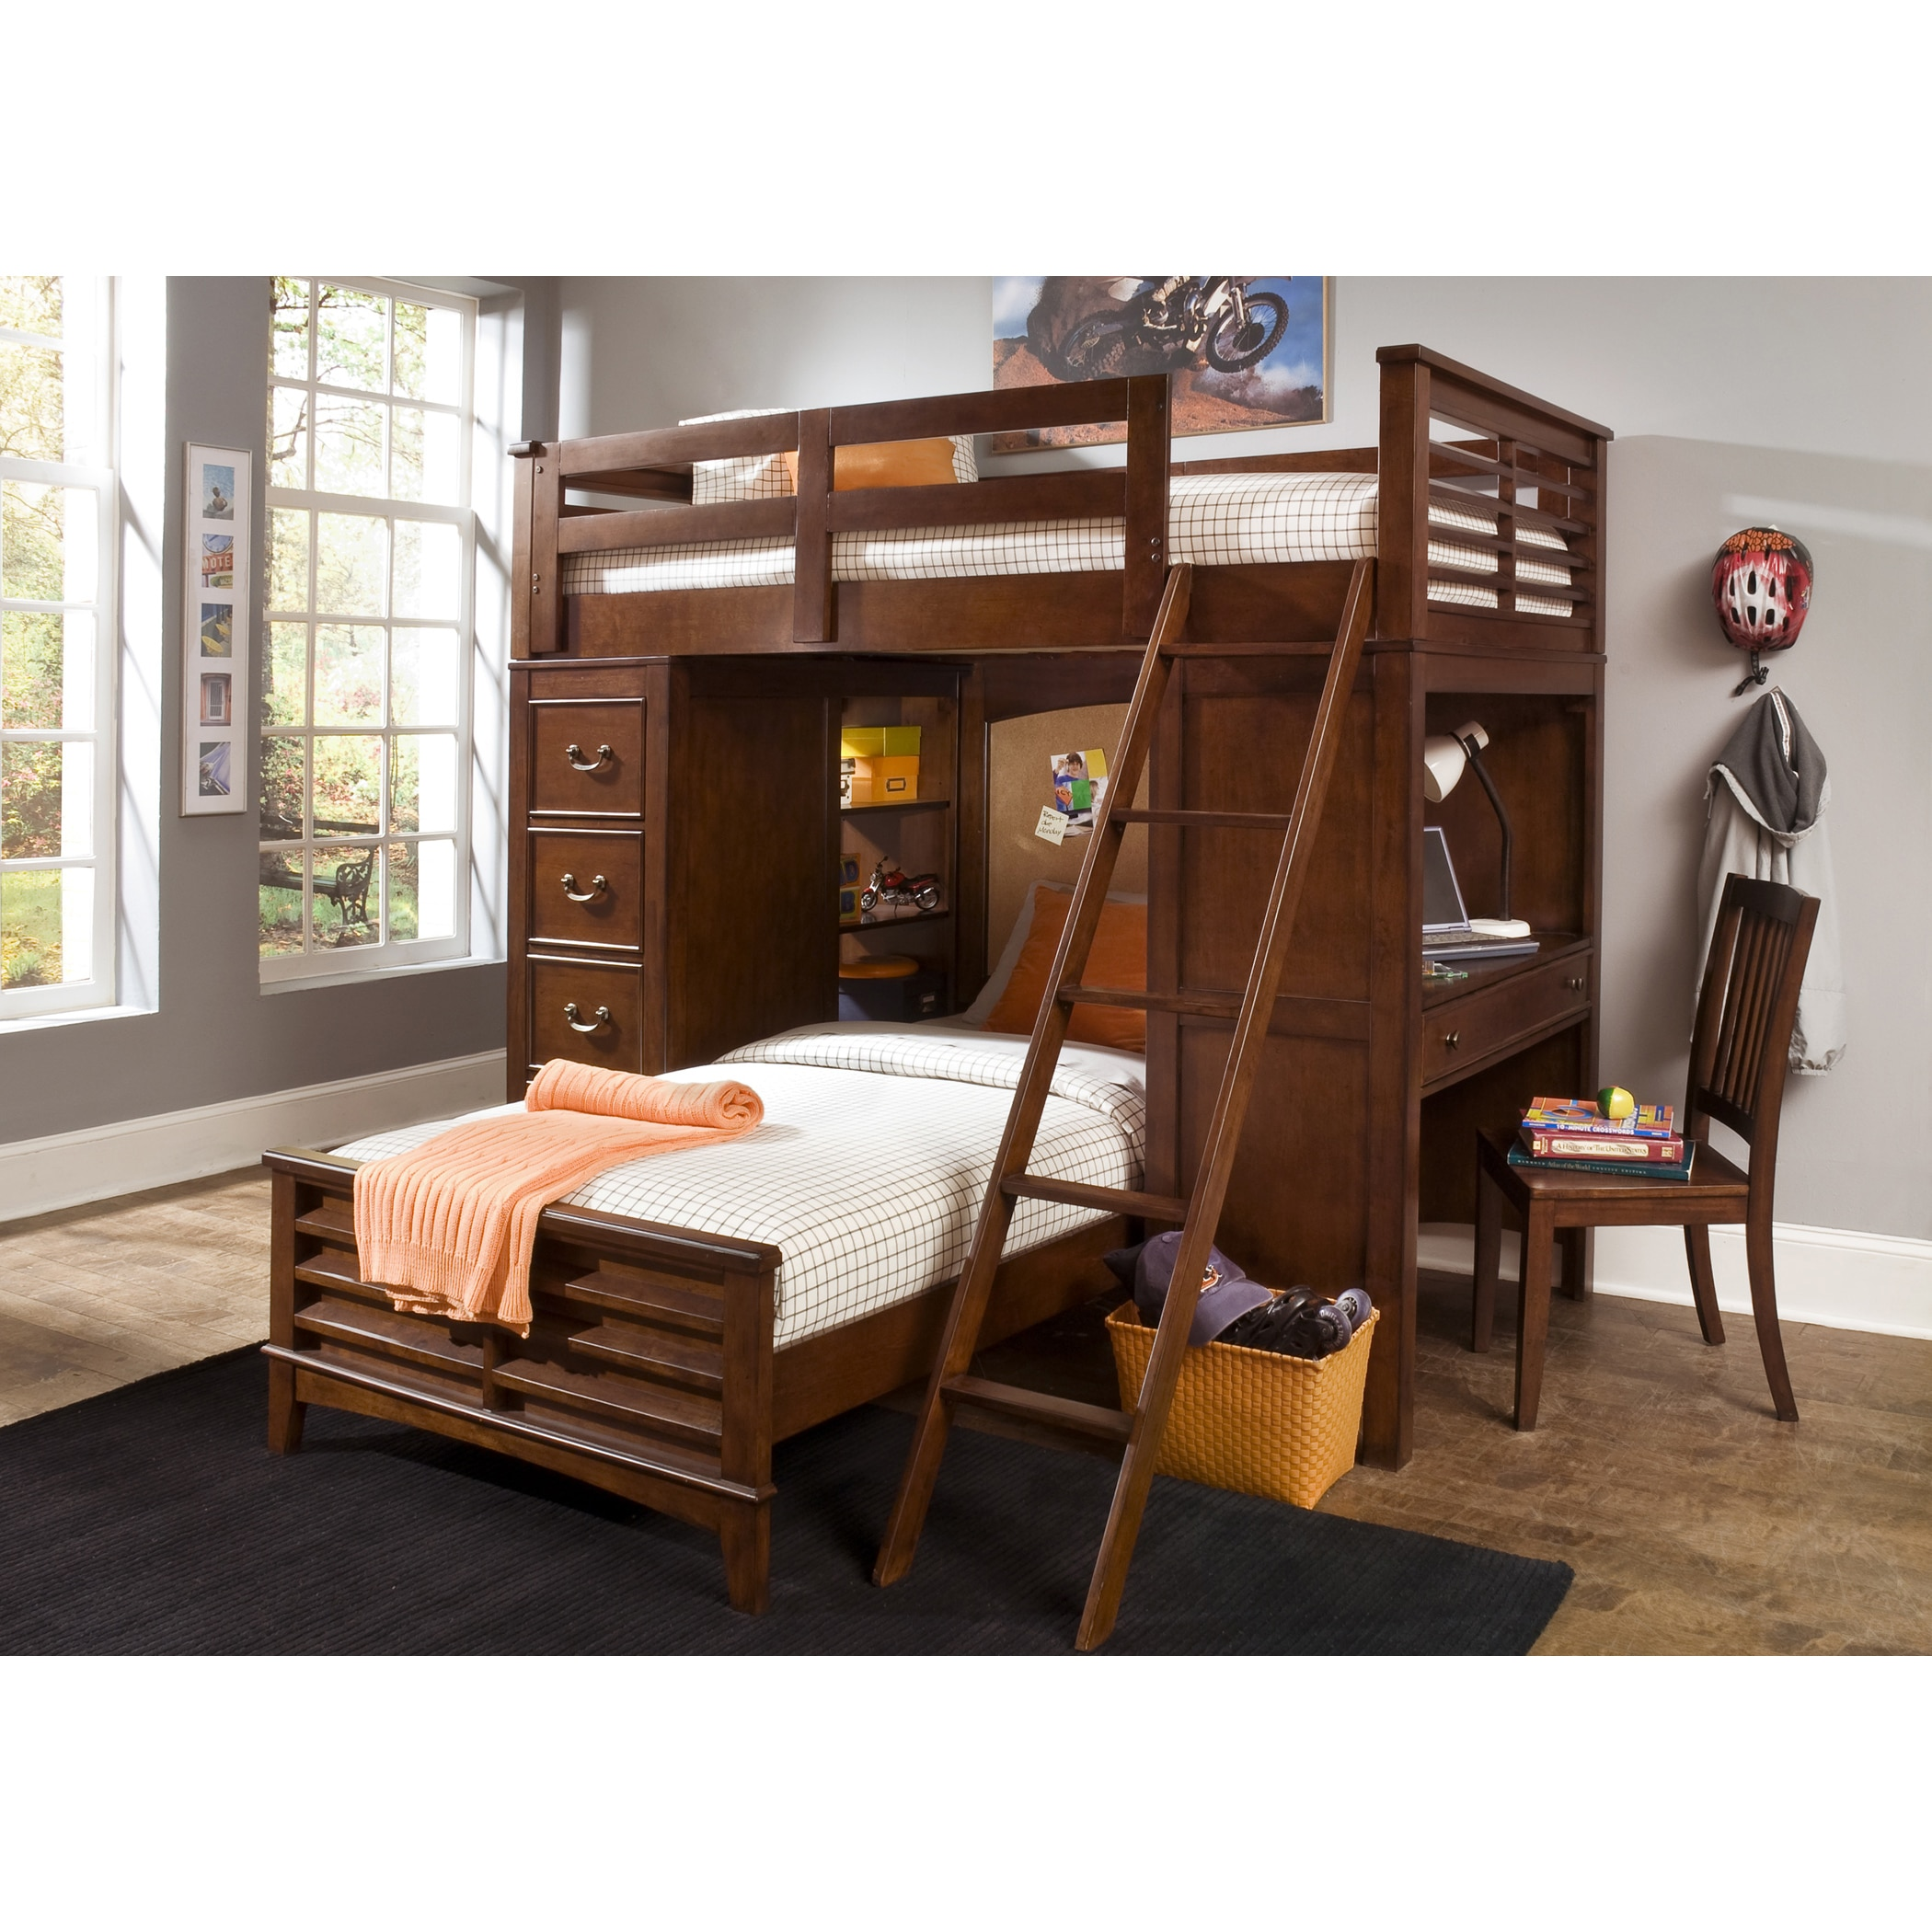 Liberty Furniture Industries Liberty Chelsea Square Twin-Over-Twin Loft Bunk Bed with Cork Board Headboard